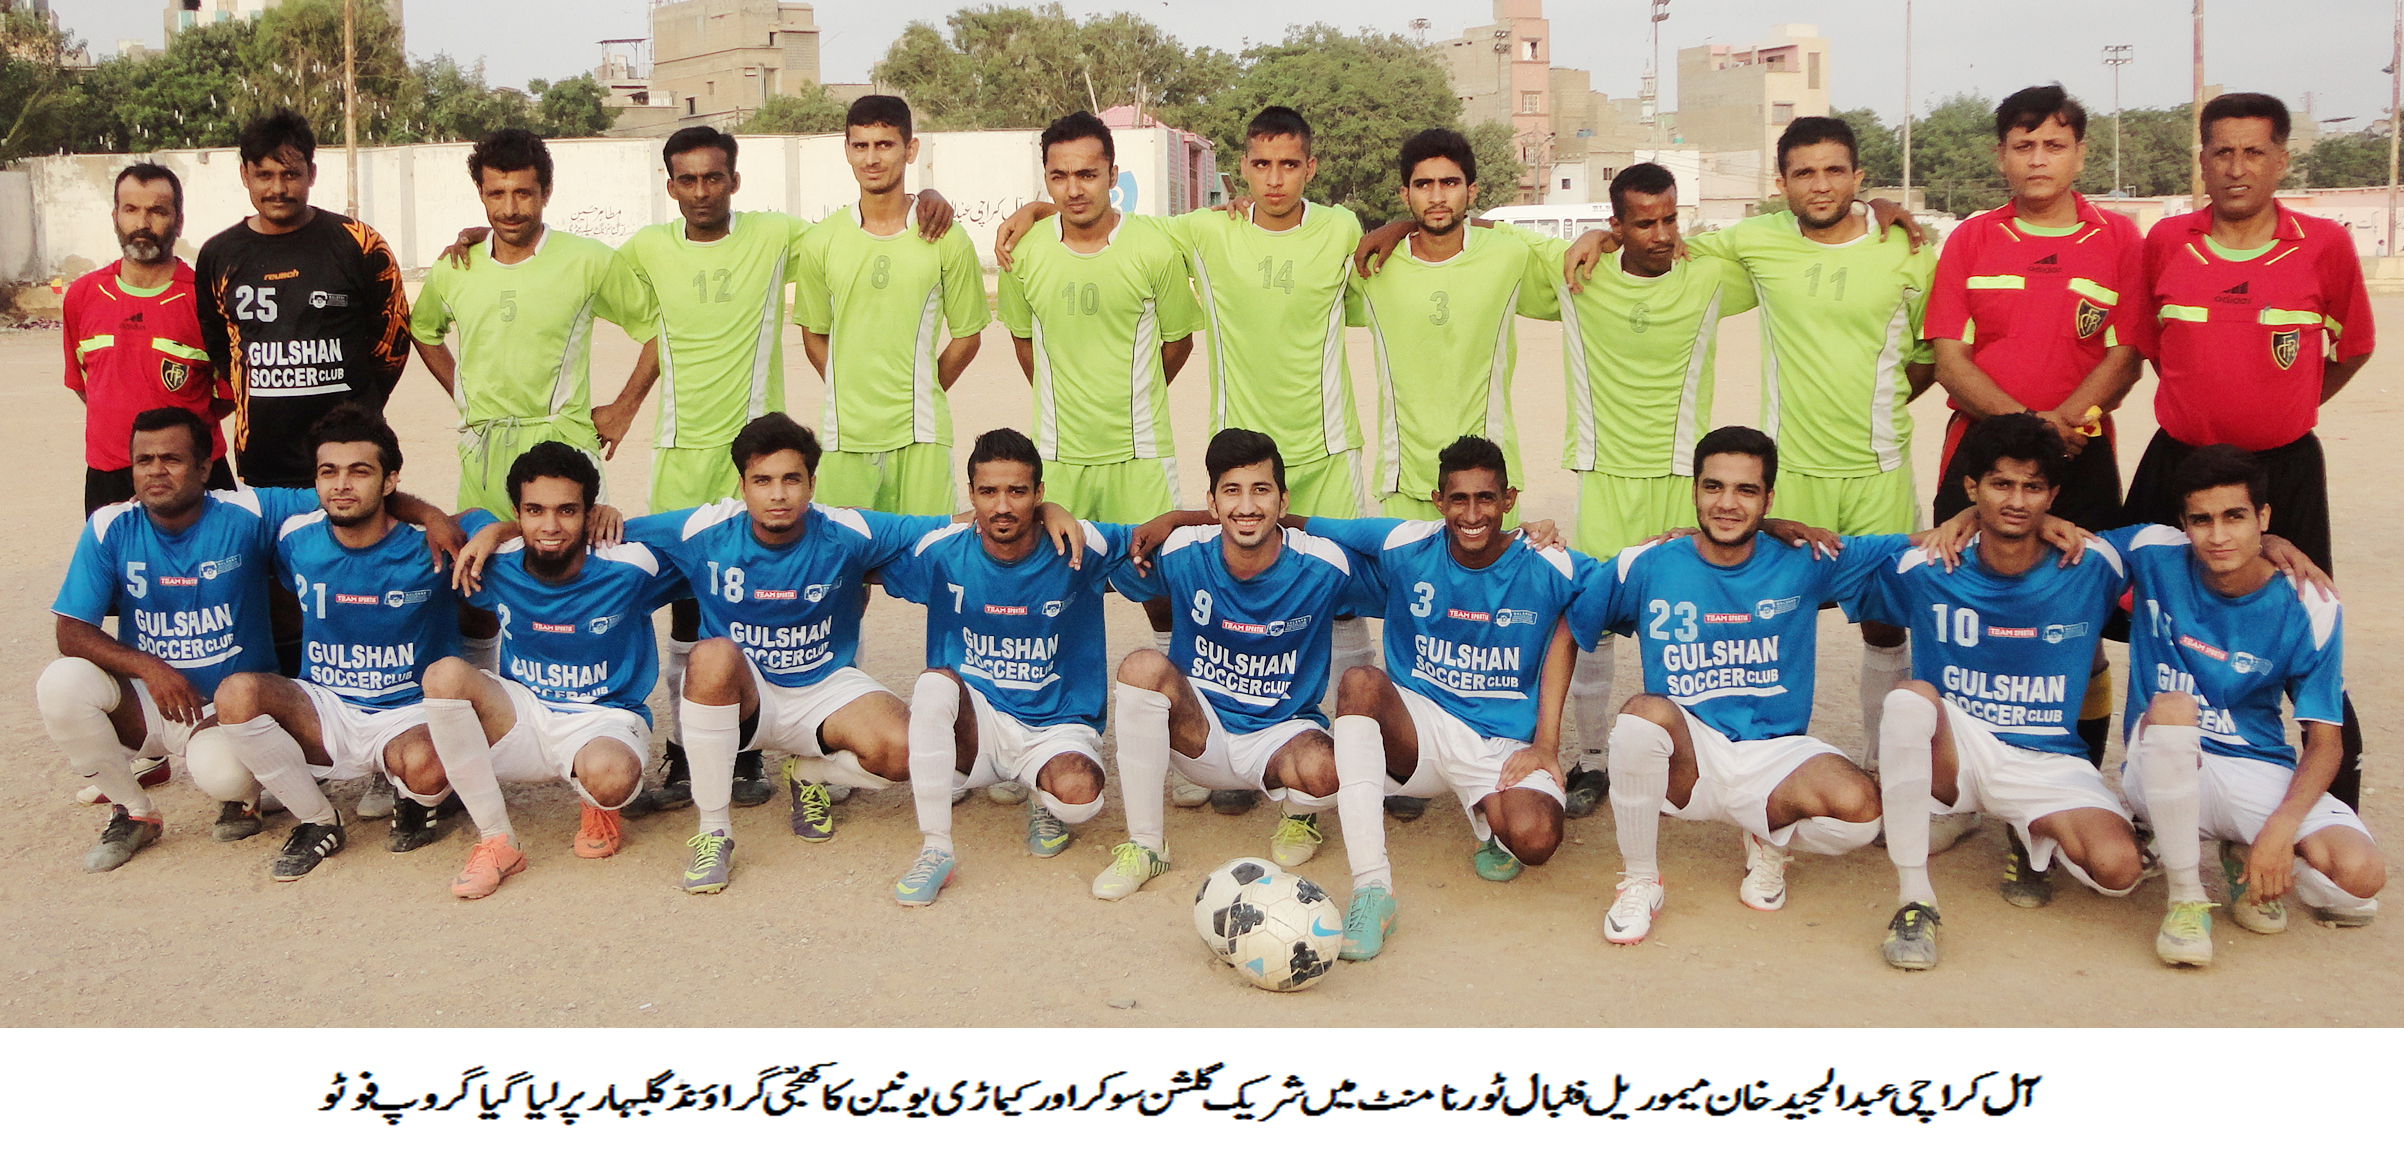 Abdul Majeed Khan Football Tournament: Gulshan Soccer and North Brothers secure victories